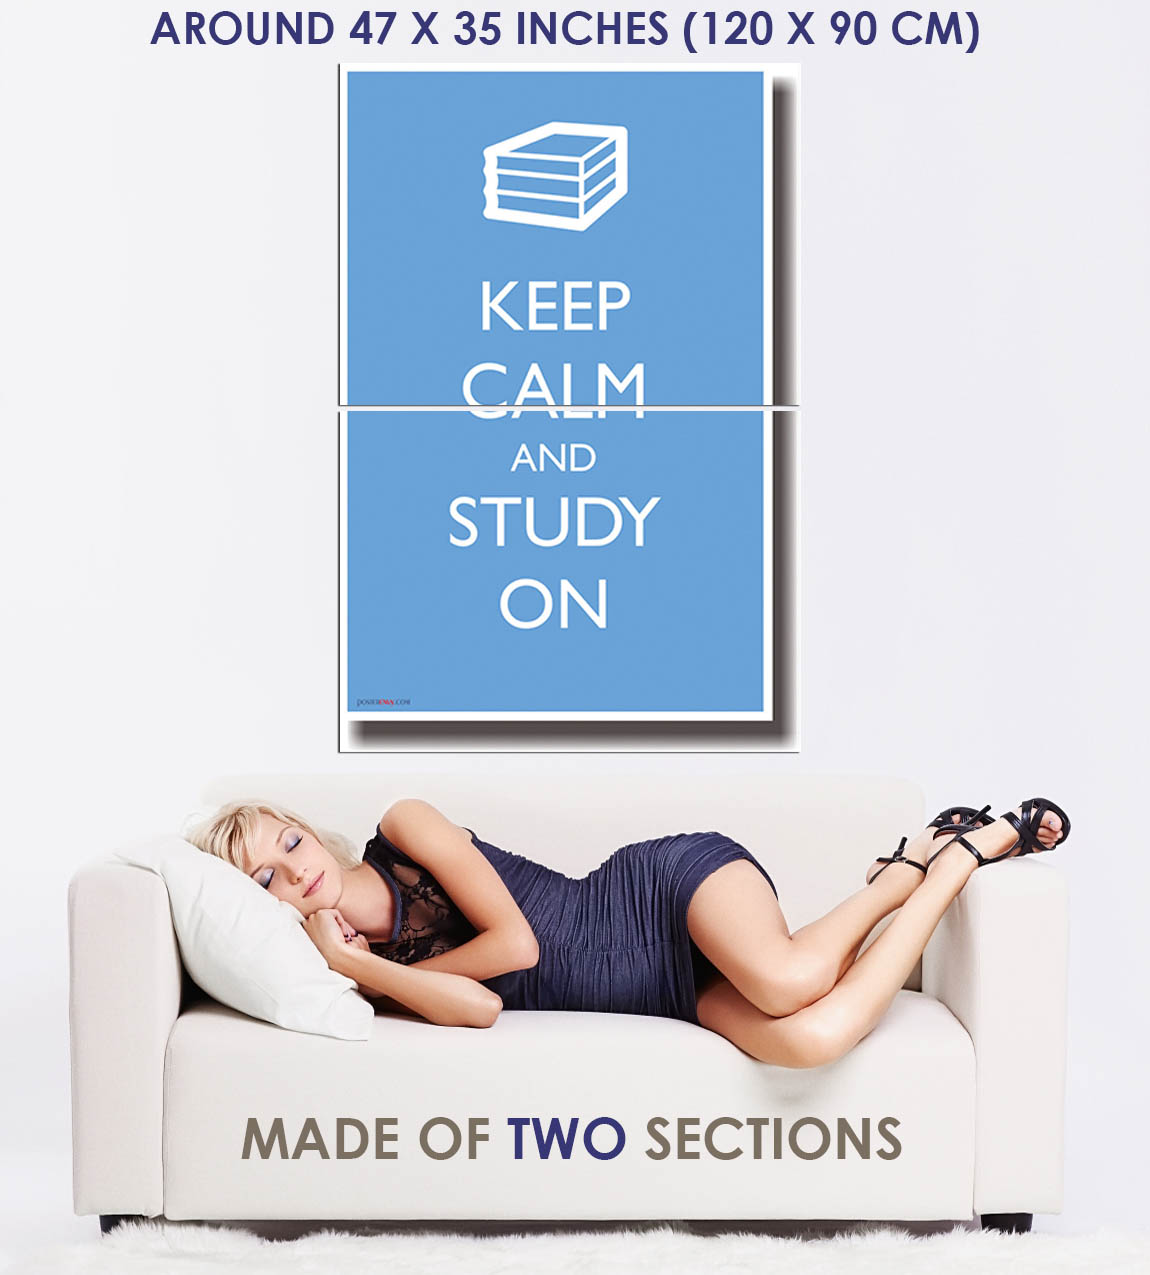 173345-Keep-Calm-and-Study-On-Humor-Decor-WALL-PRINT-POSTER-FR miniature 5